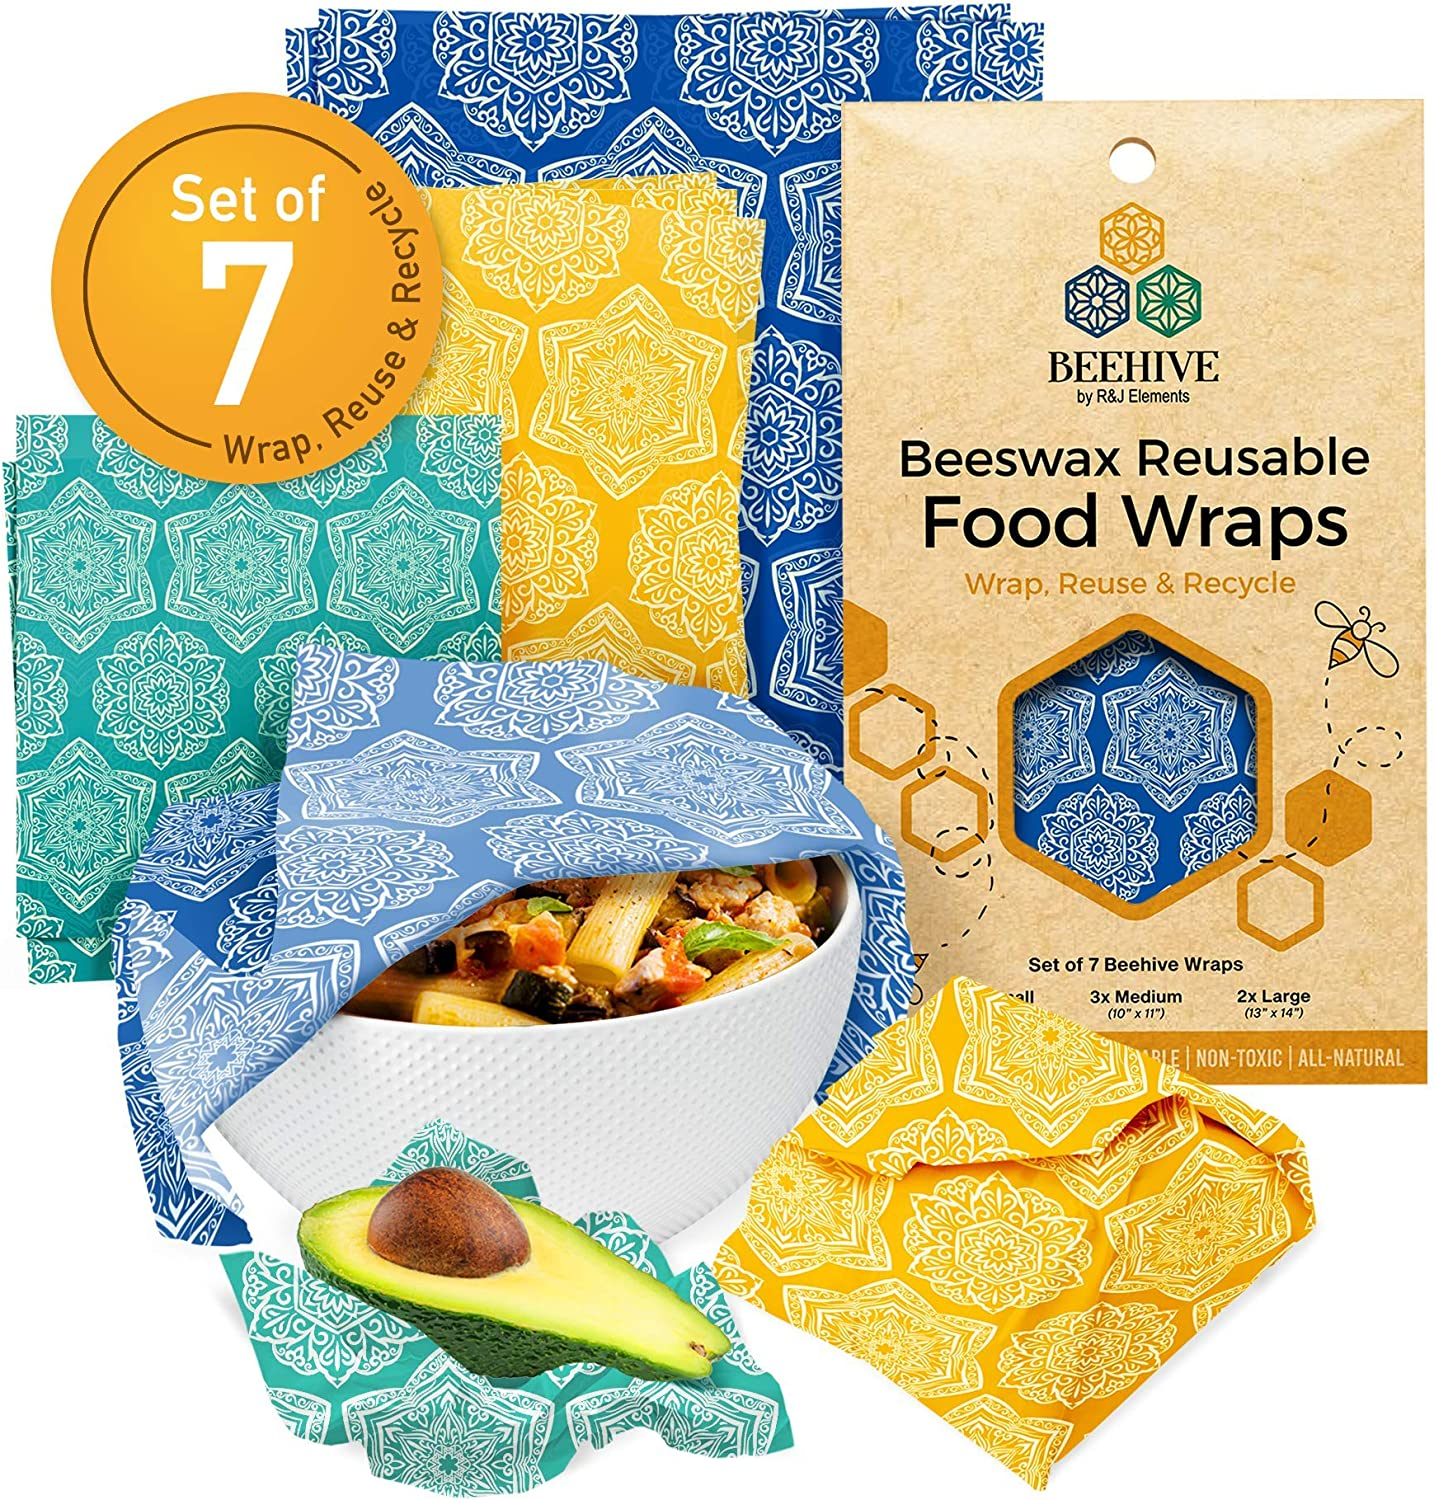 BEEHIVE Reusable Beeswax Food Wraps – 7 Pack Organic Food Wrap for Bread & Sandwich Wrapping – Eco Friendly, Sustainable & Zero Waste Biodegradable Bees Wax Wrap for Food Cover & Storage